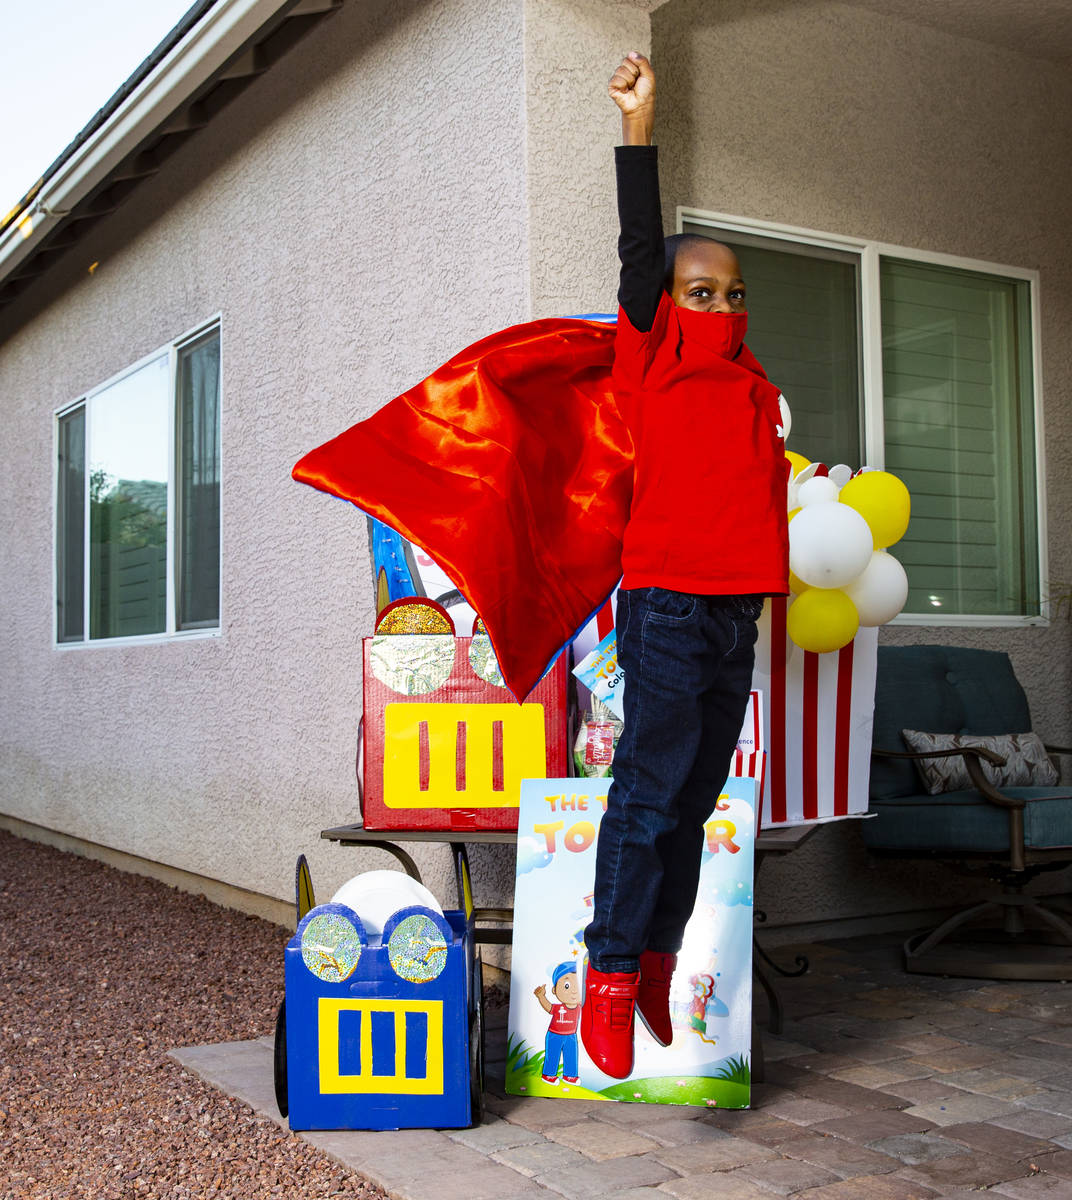 Five-year-old Justyn Boumah, who led a read-a-thon fundraiser, poses for a portrait at his home ...